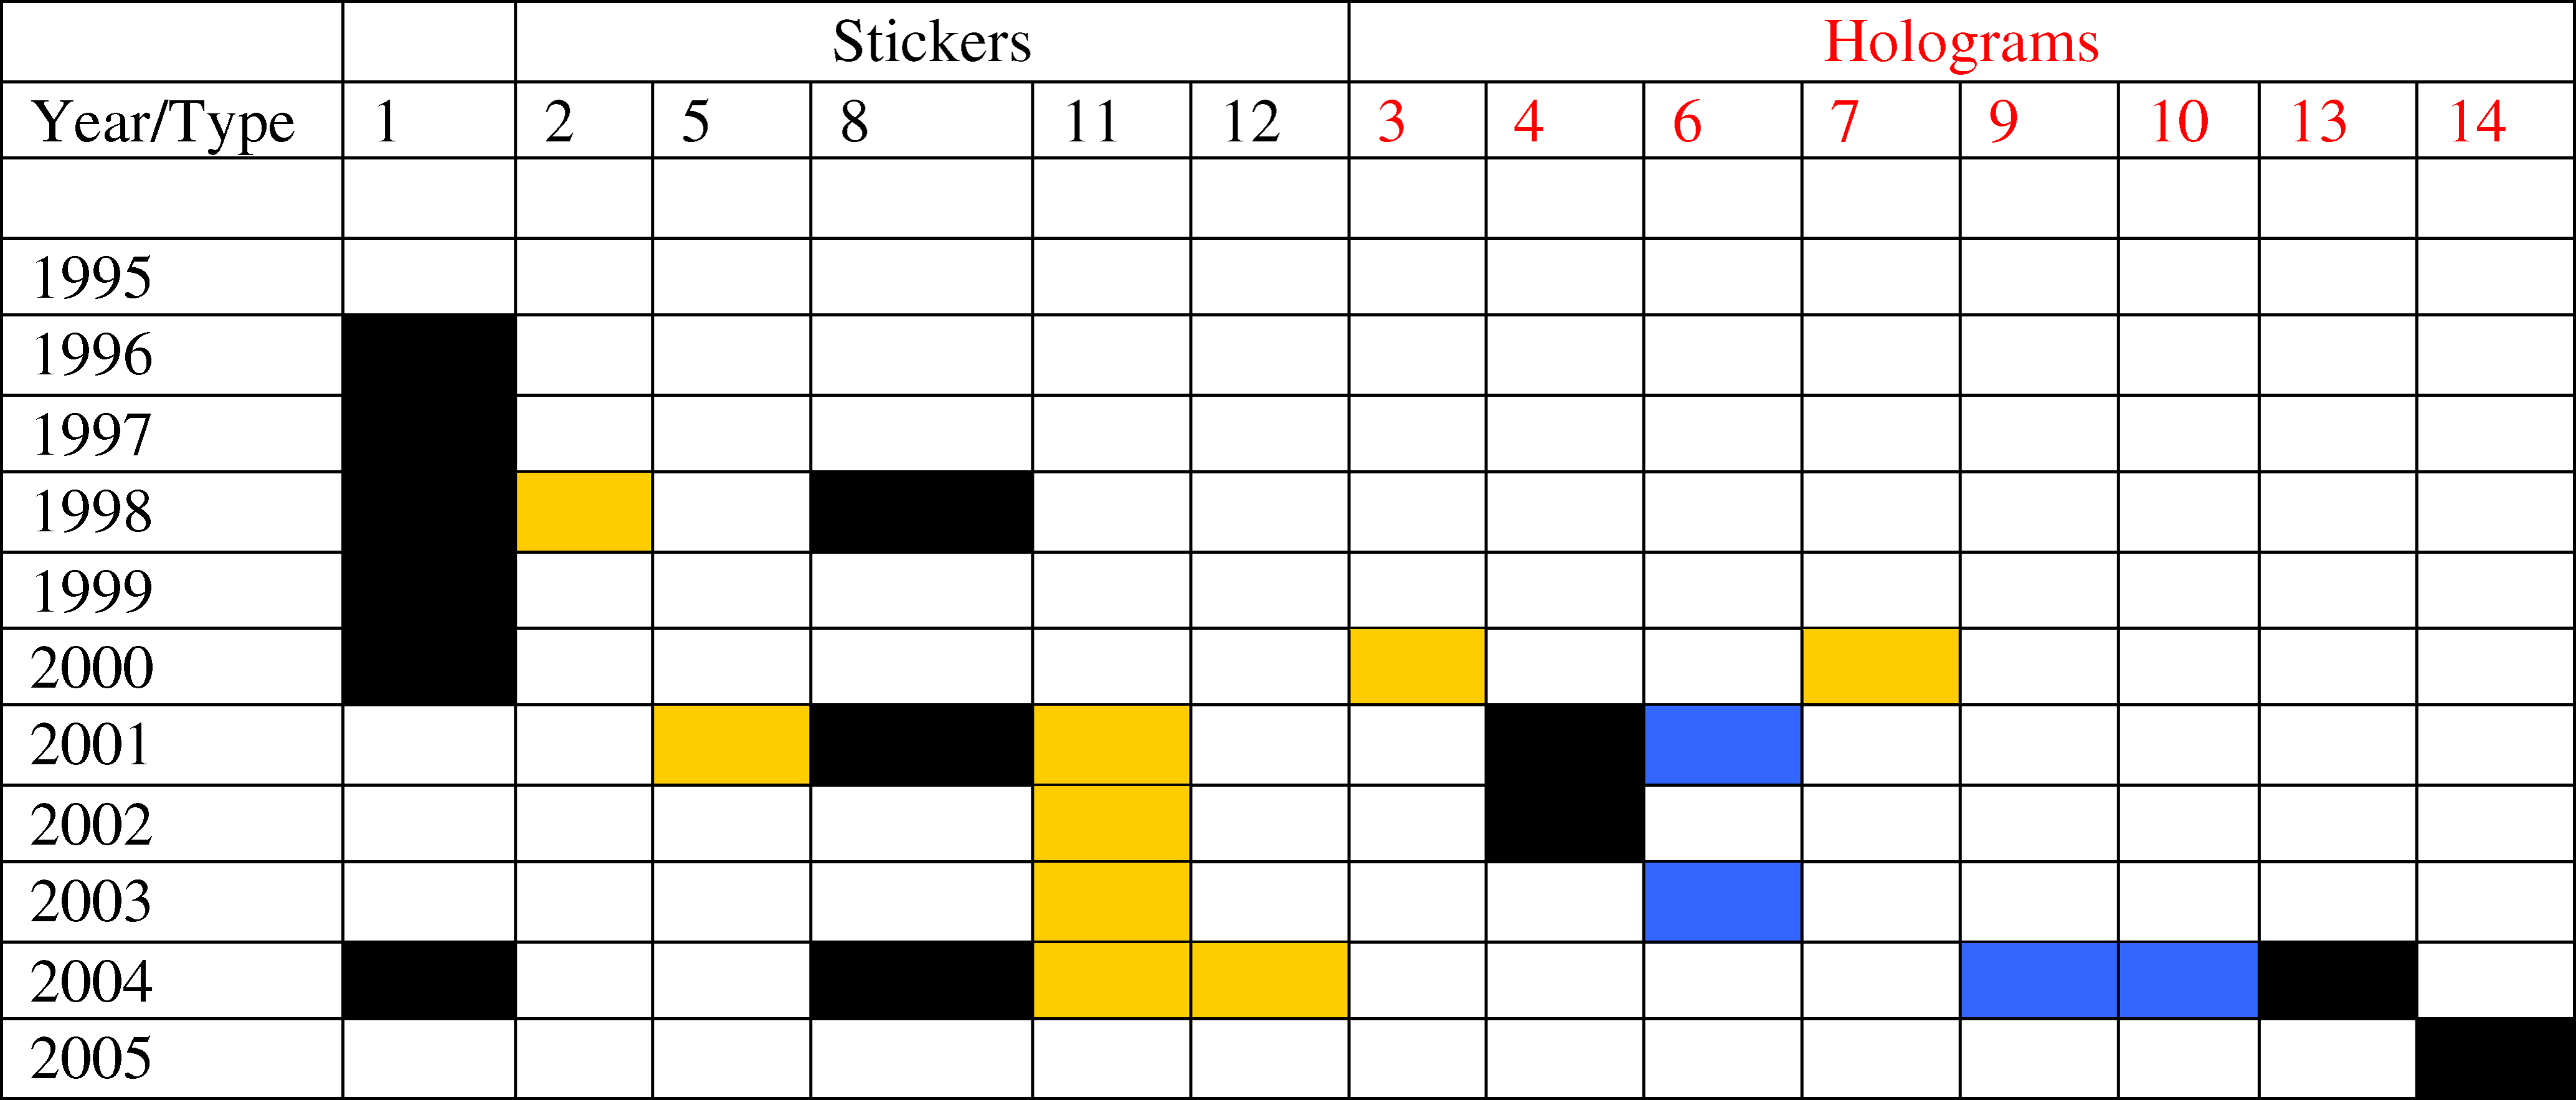 Relationship between the Stated Year of Manufacture of Fake Artesunate for Those Bearing Fake Stickers and Fake Holograms in Order of Discovery between 2000 and 2006